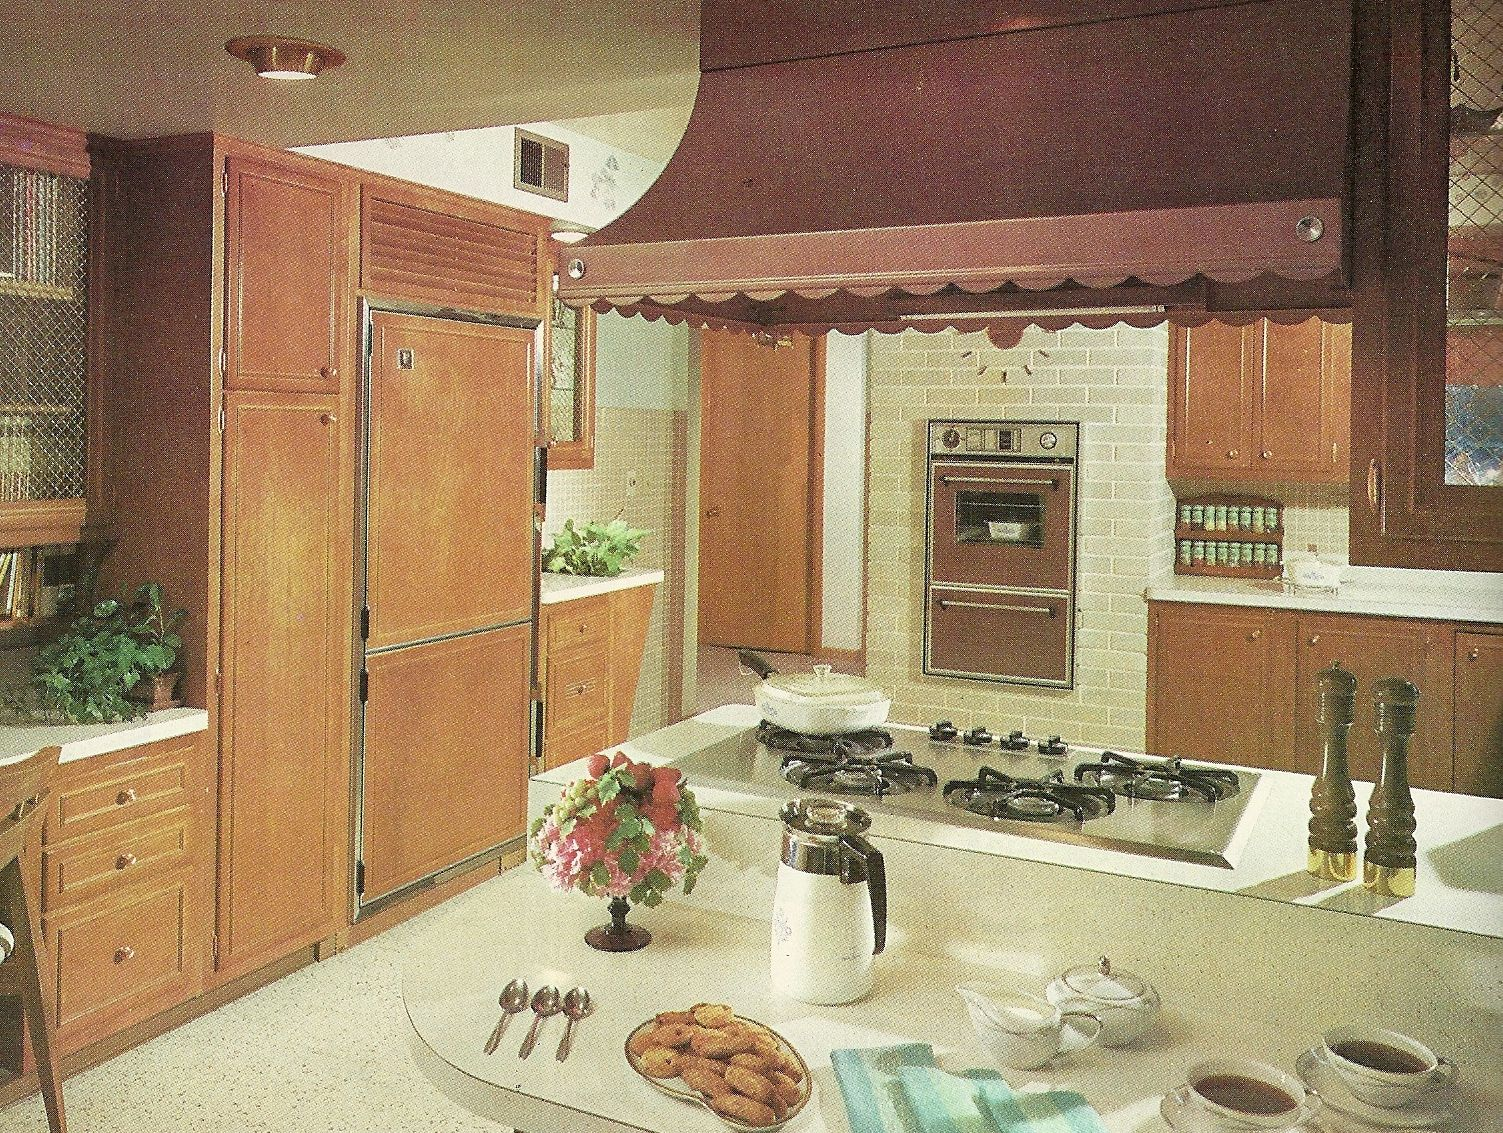 1960s Kitchens vintage 1960's bathroom | vintage home decorating 1960s: kitchens